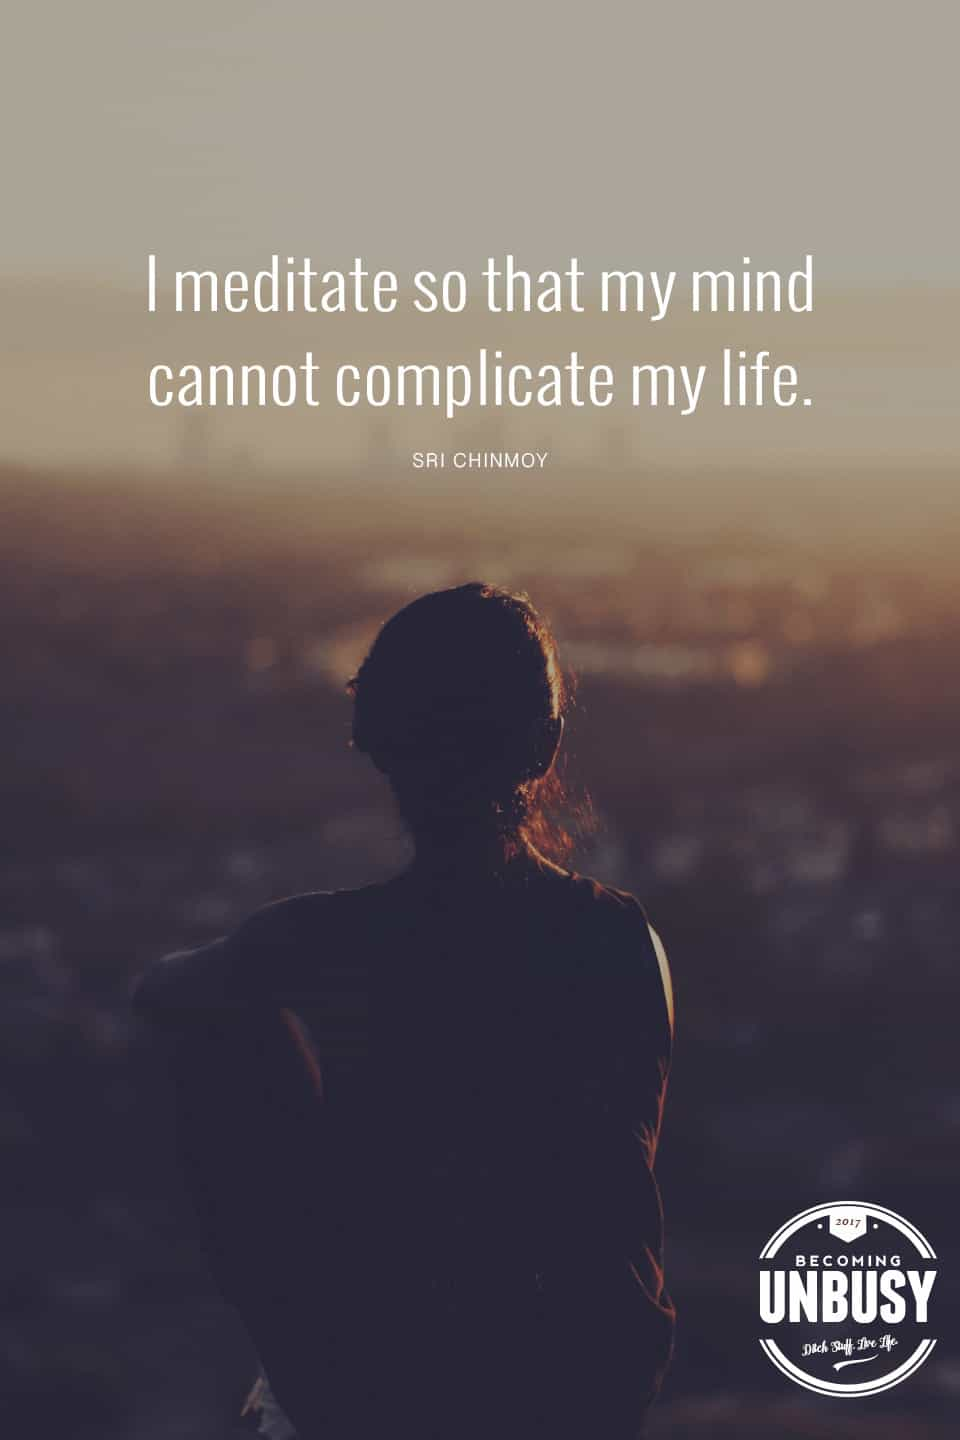 I meditate so that my mind cannot complicate my life. - Sri Chinmoy *Love this quote, this life bucket list, and this becoming UnBusy site.